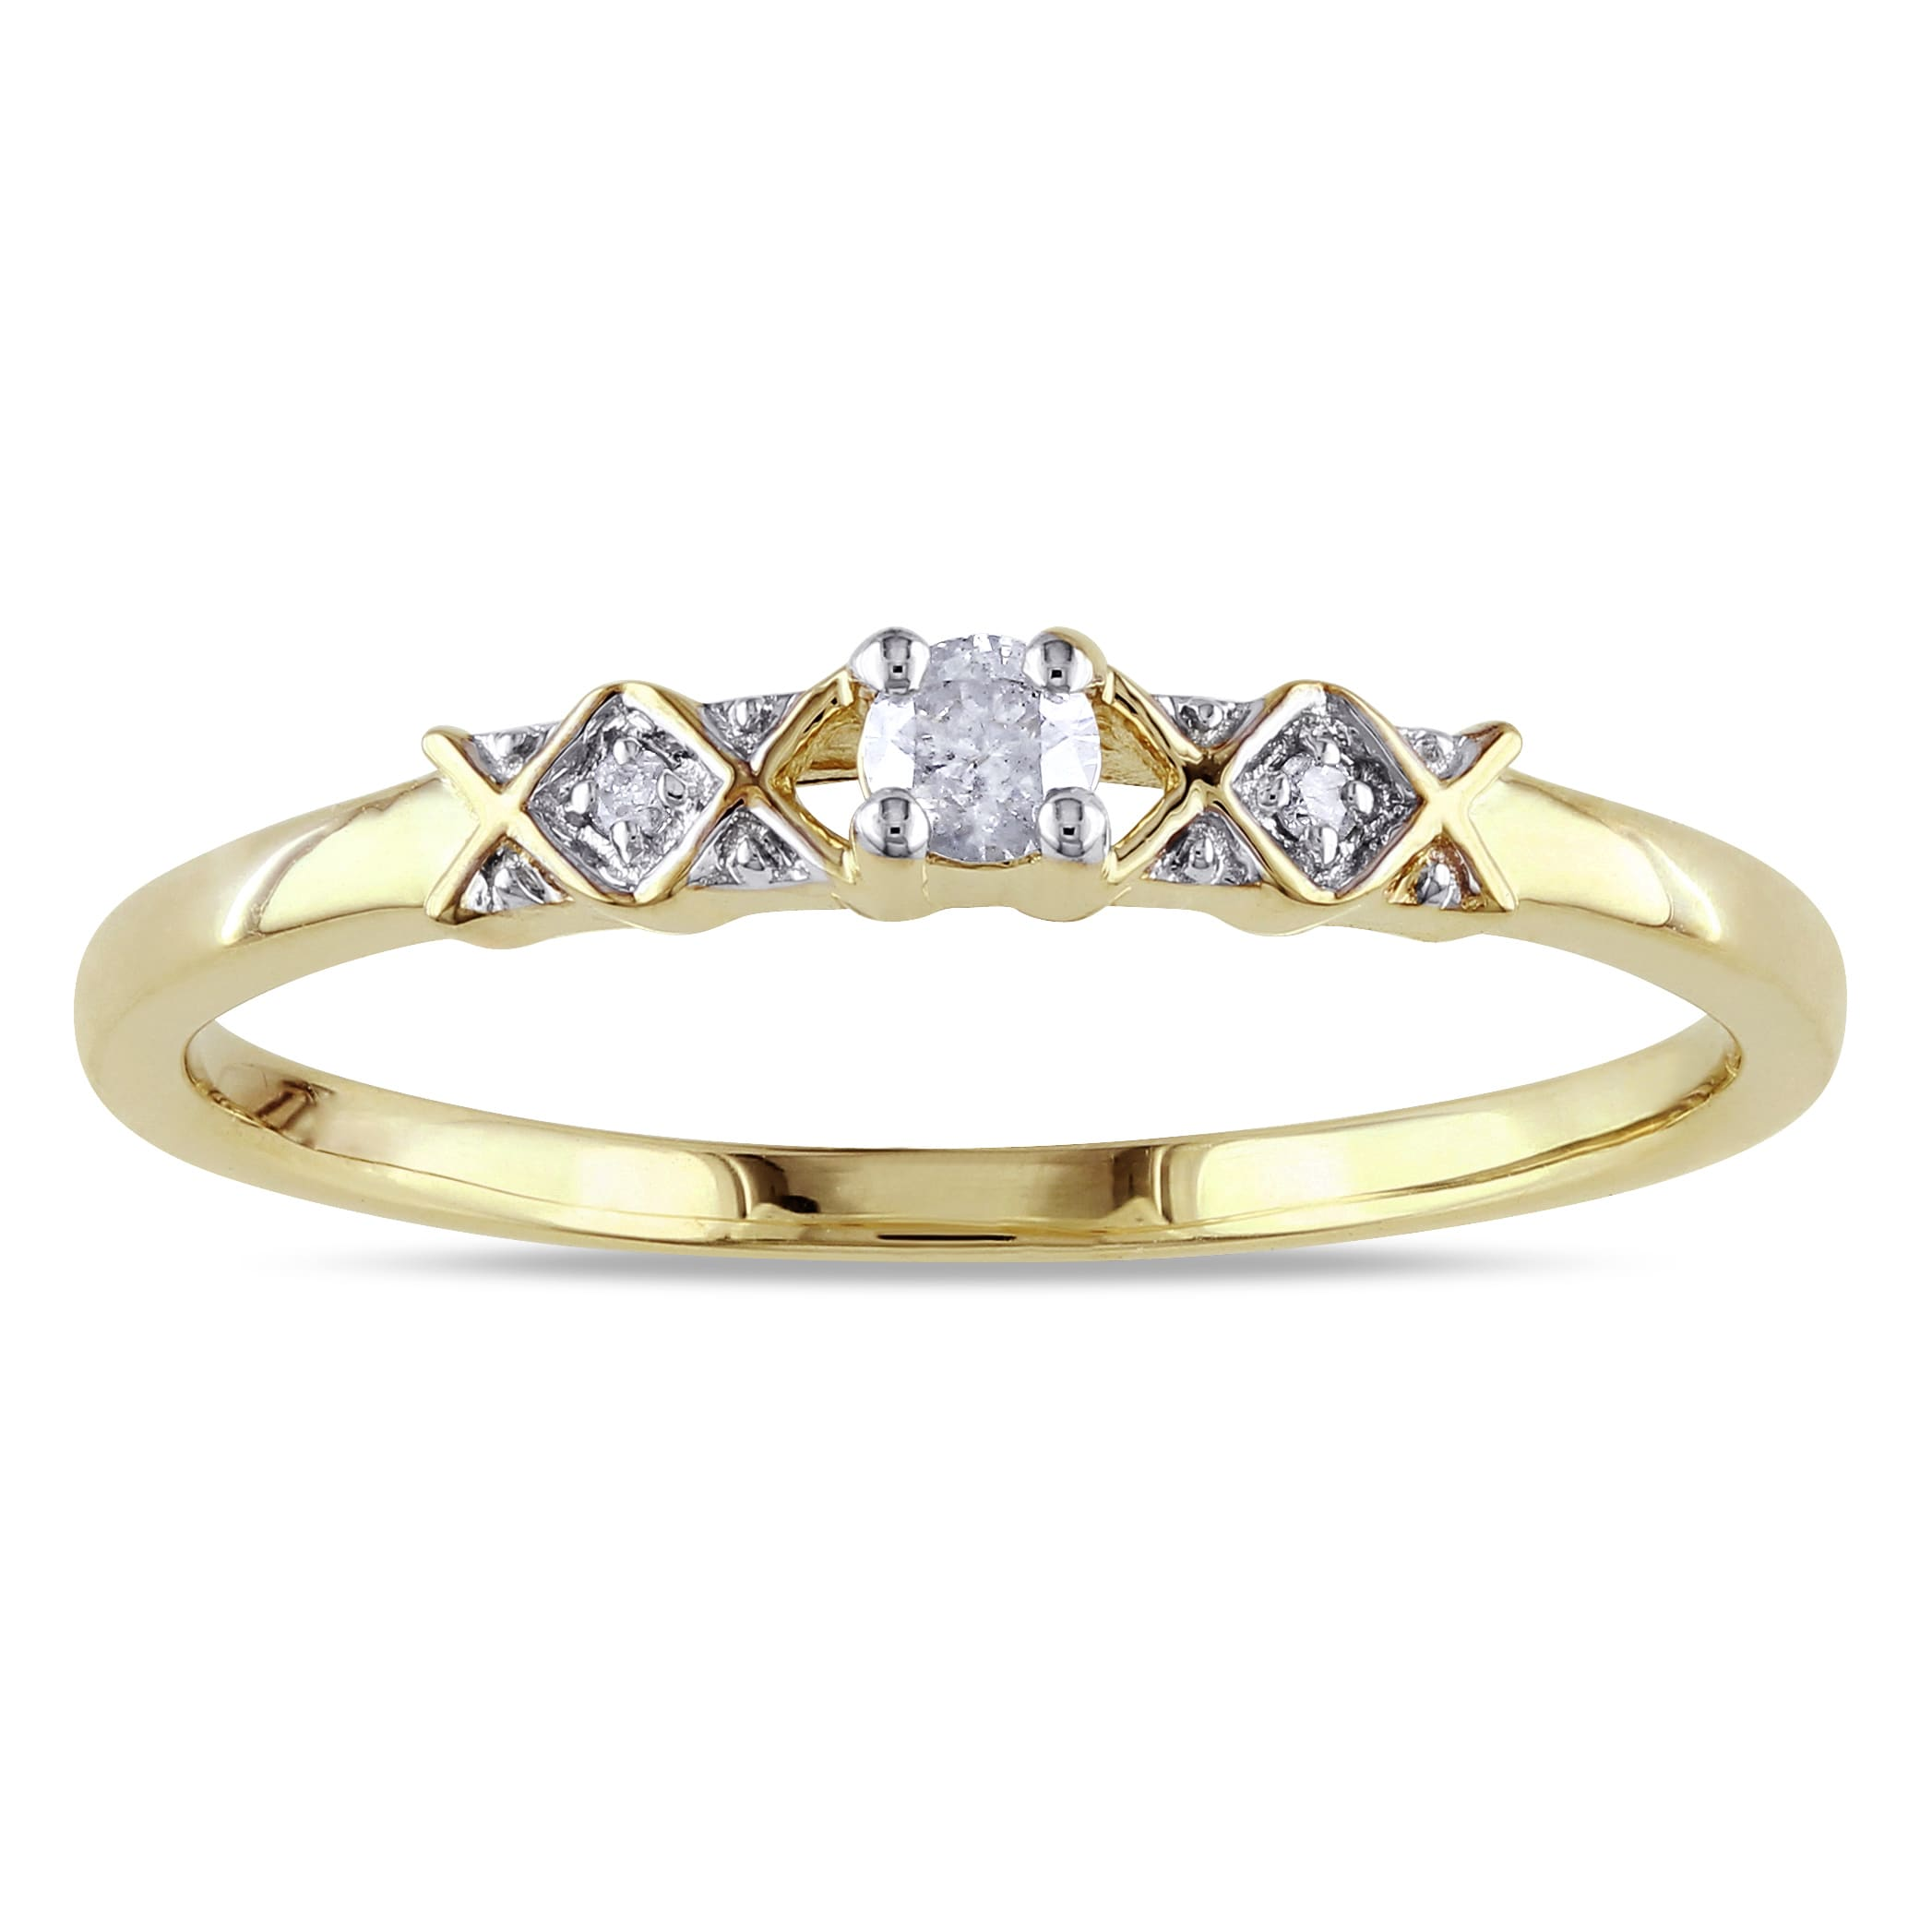 Size-3 3 Diamond Promise Ring in 10K Yellow Gold G-H,I2-I3 1//10 cttw,